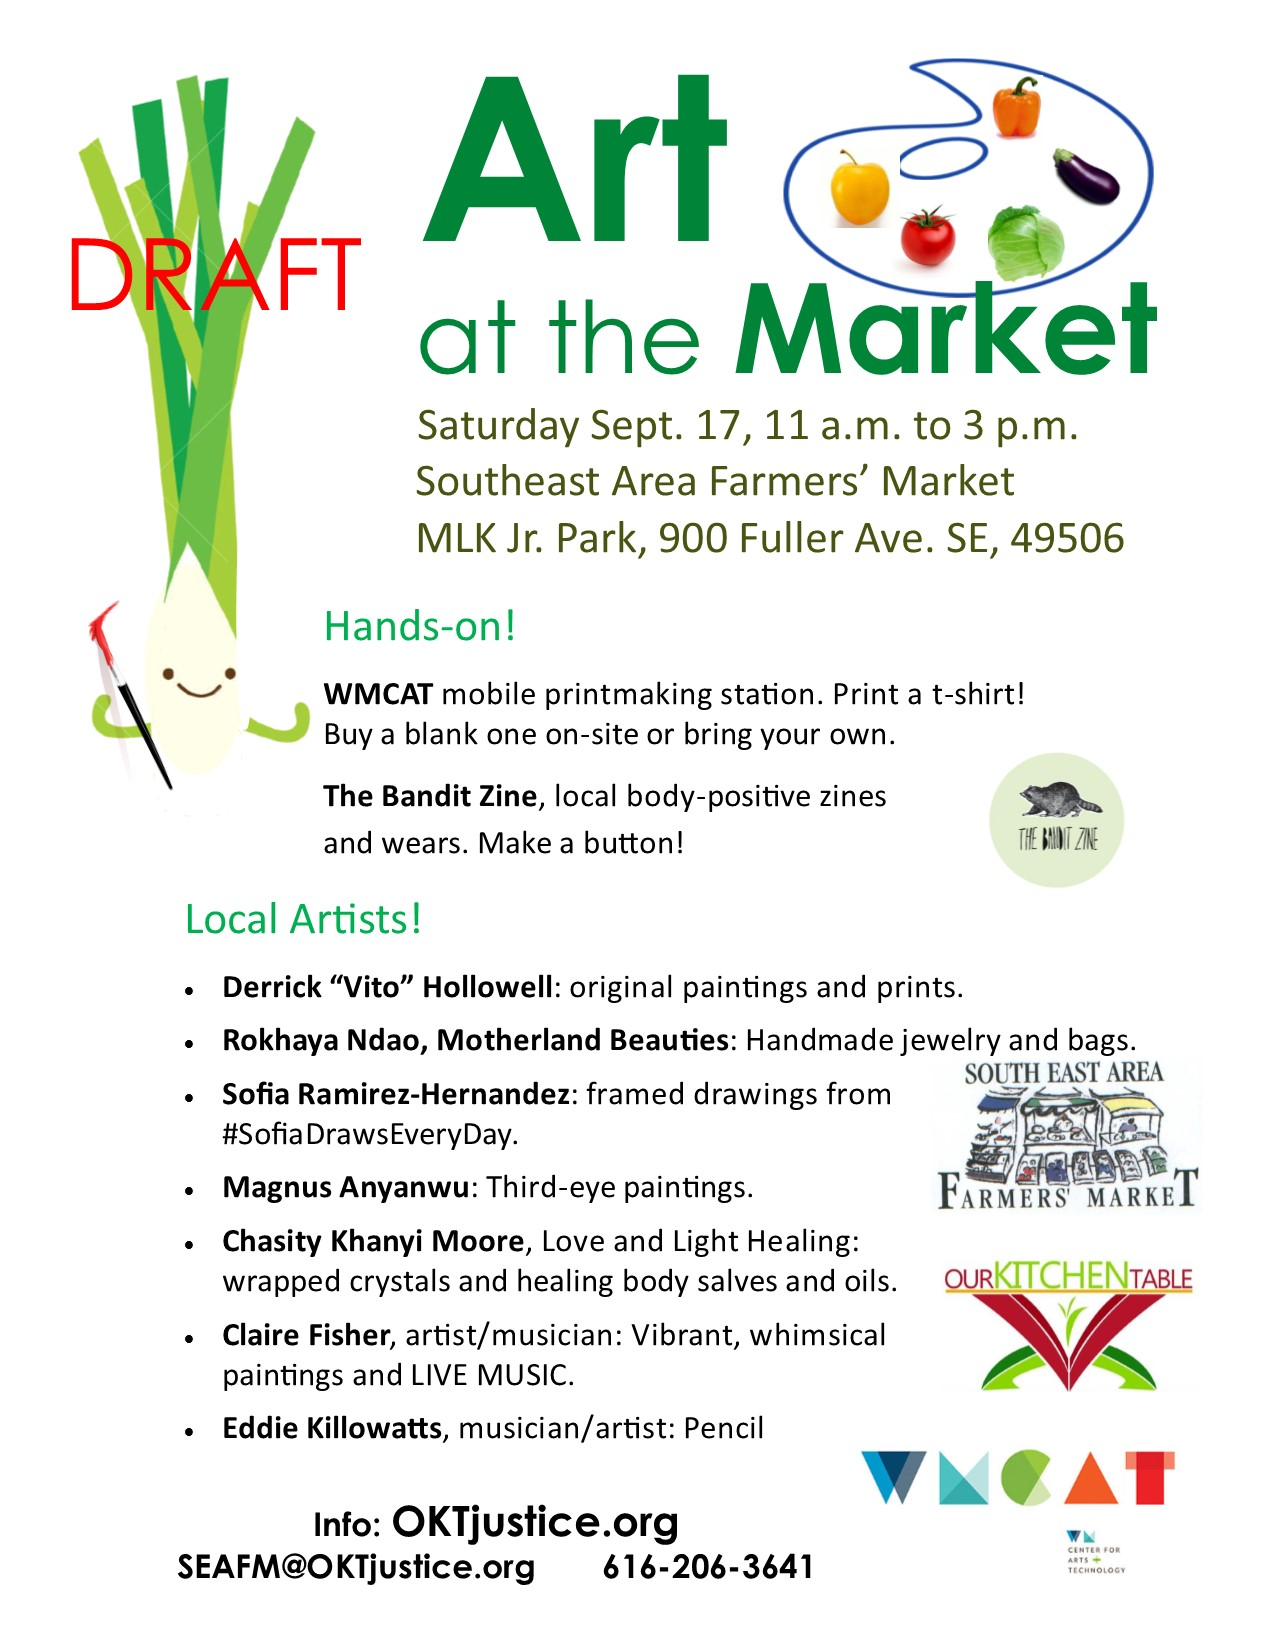 Art at the Market 8x11 flyer